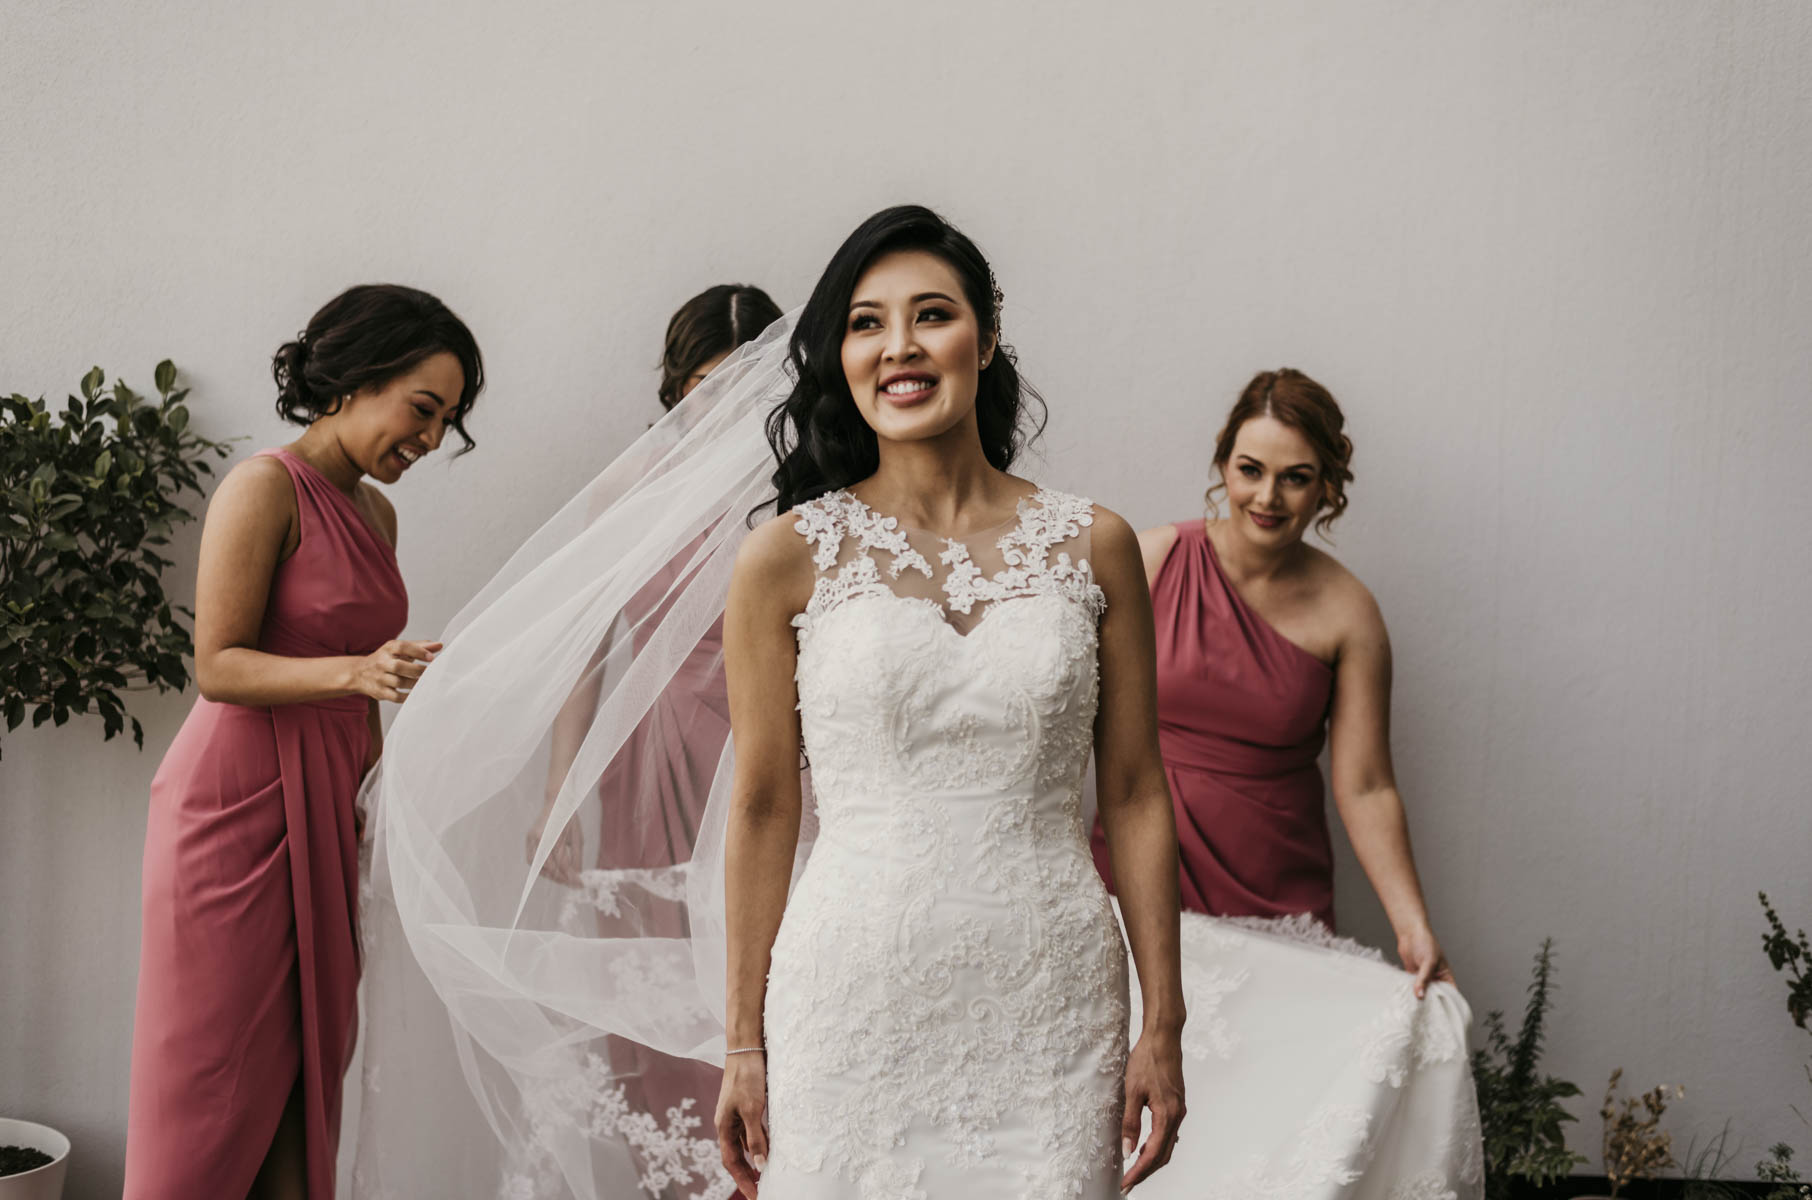 Brisbane bride, Shay looked incredible on her wedding day. Dressed in a mermaid cut, white wedding gown. She had the support of her bridesmaids, who helped her get dressed